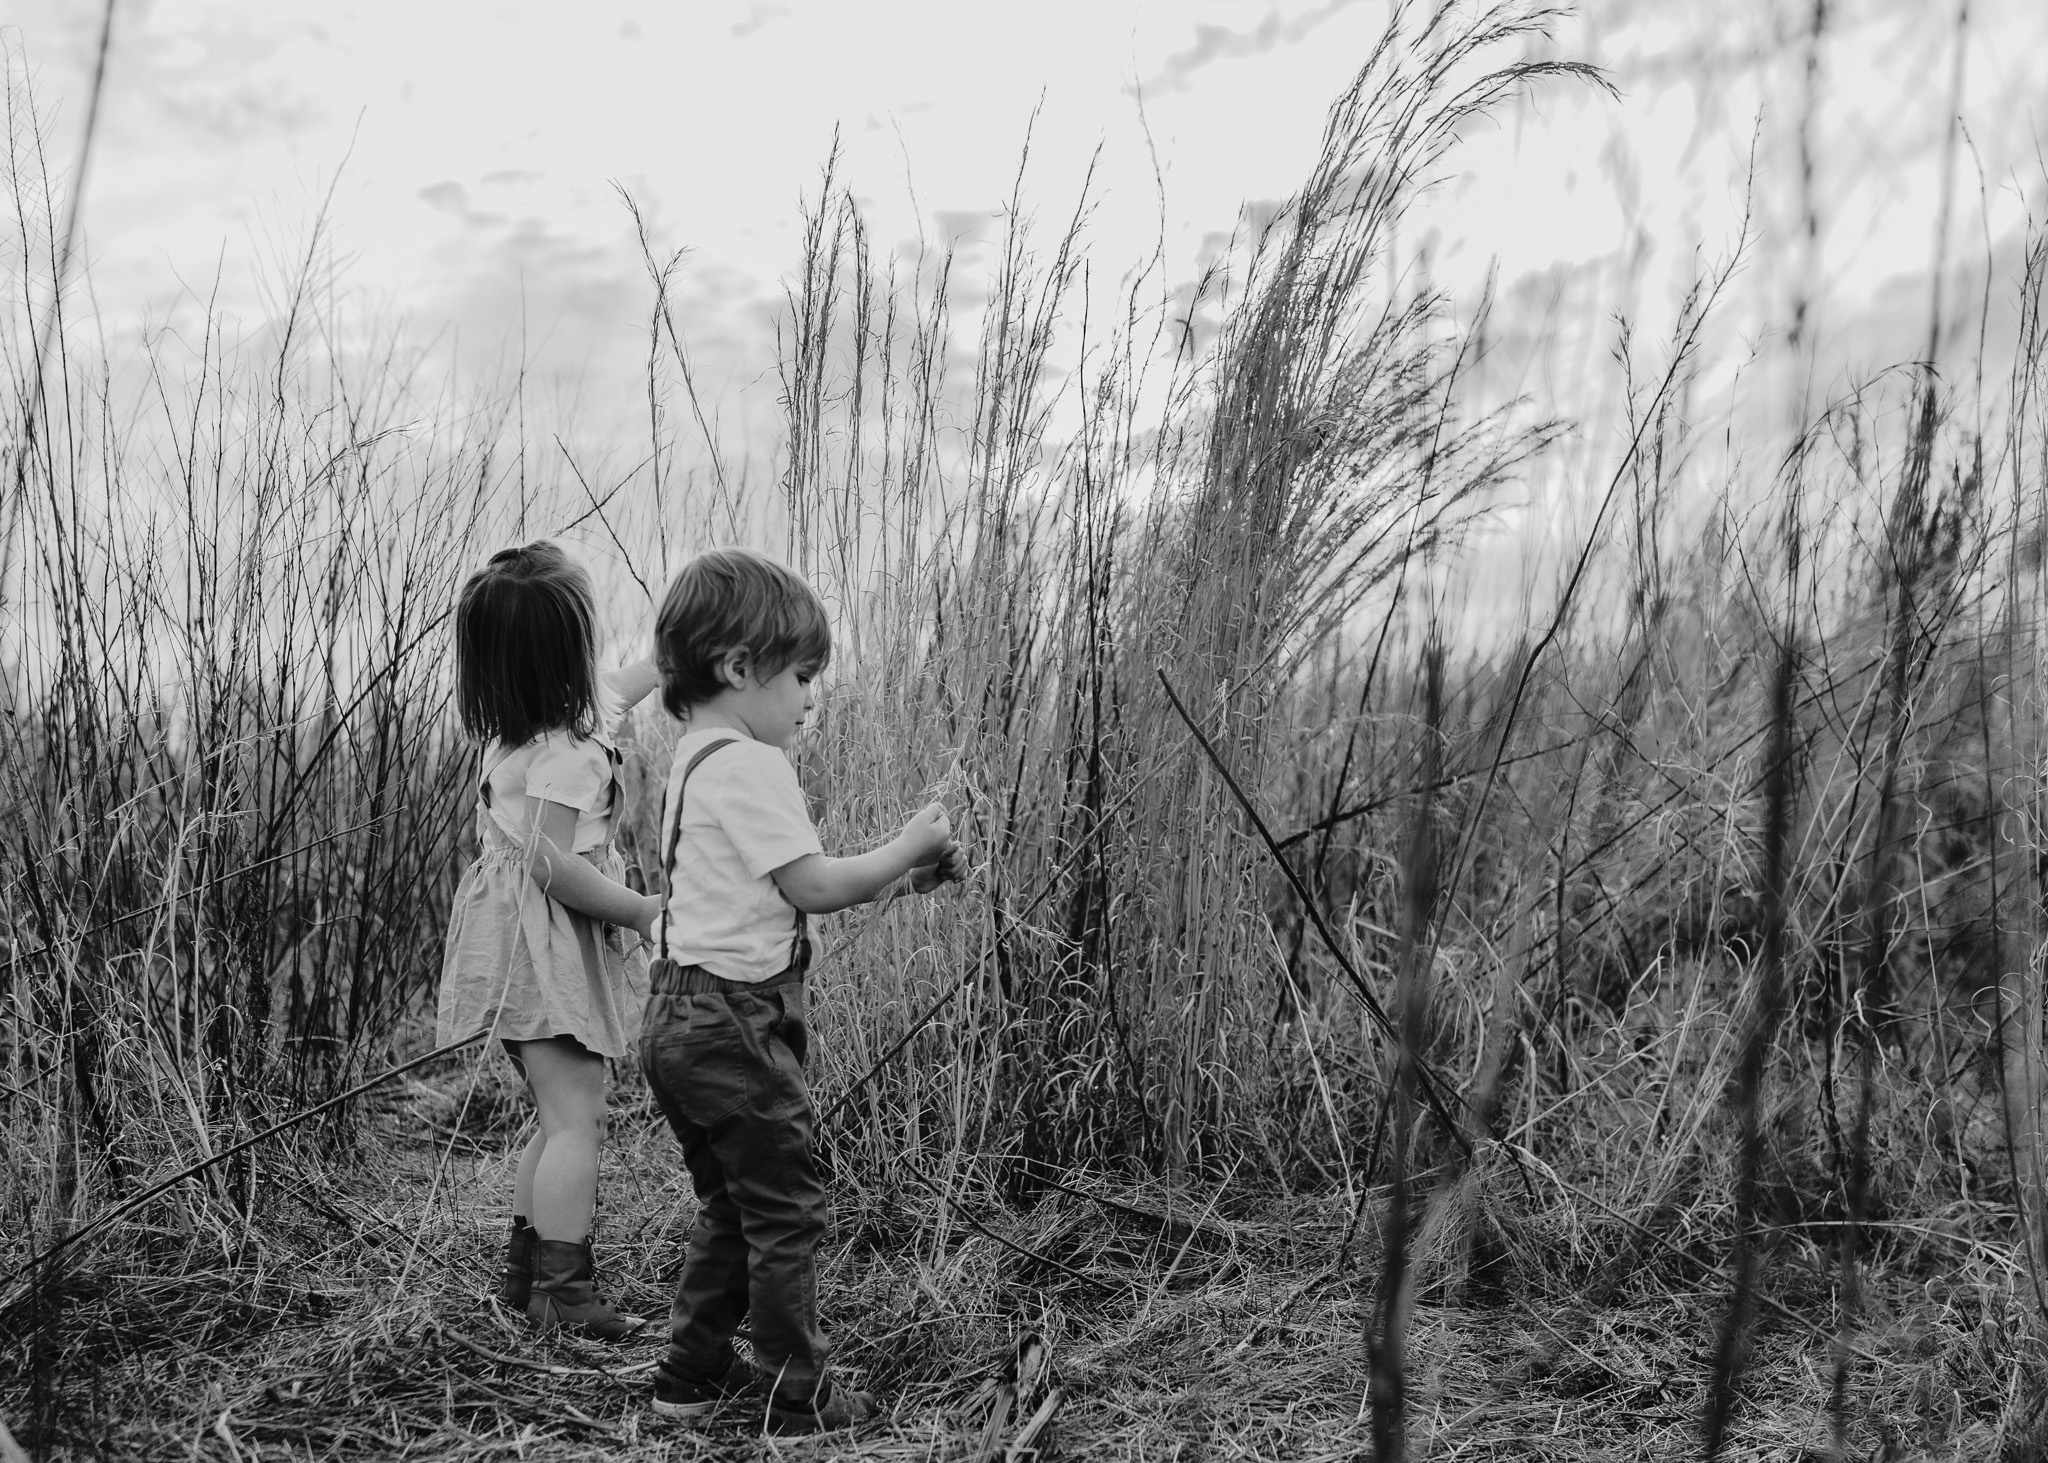 Black and White Children Playing